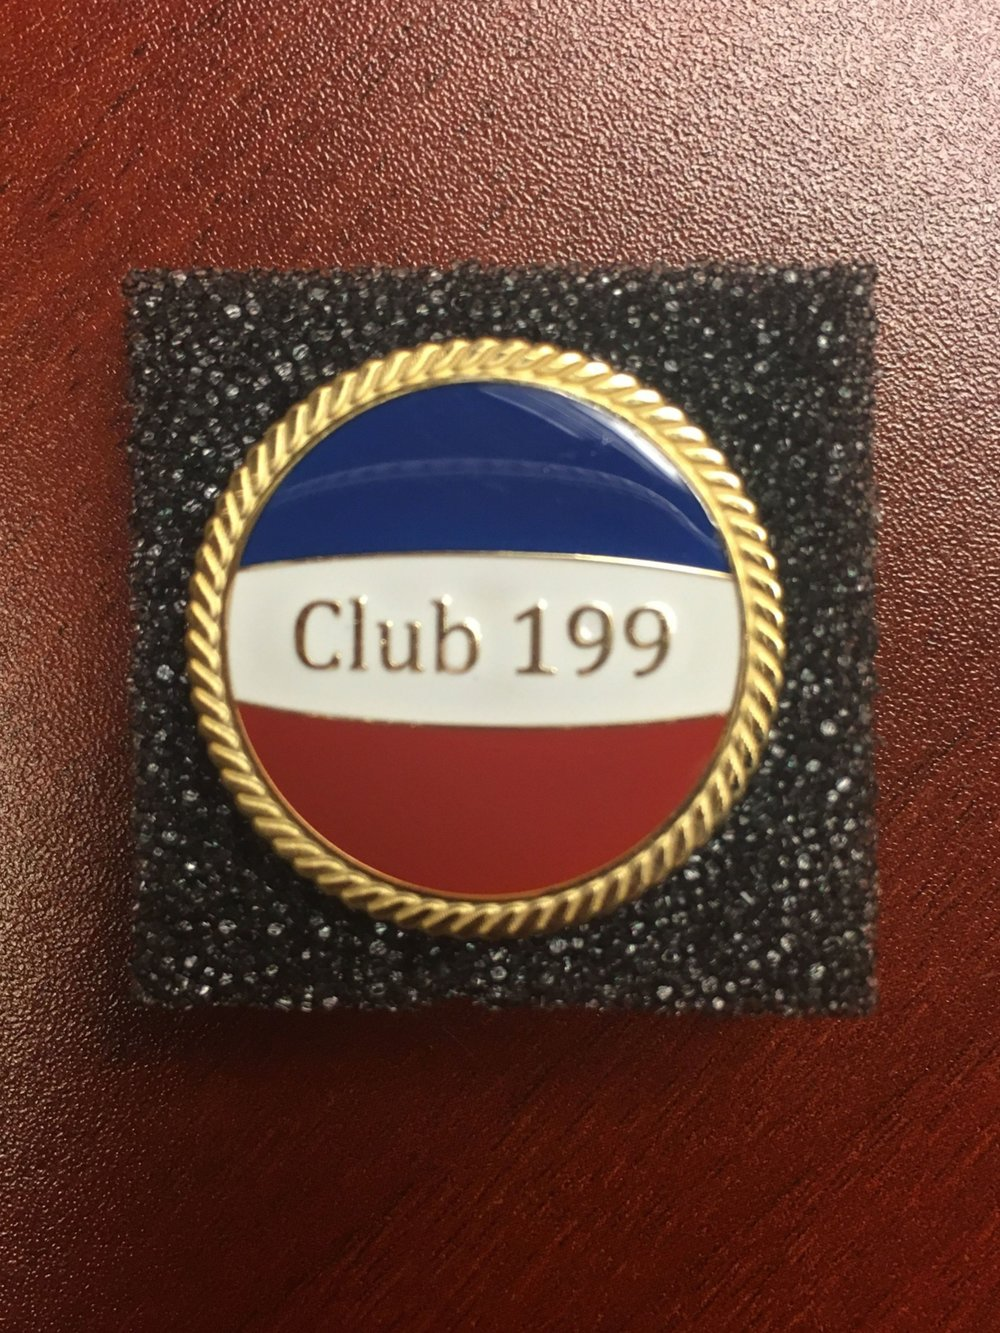 2019 Club 199 Pin! Made in the USA!